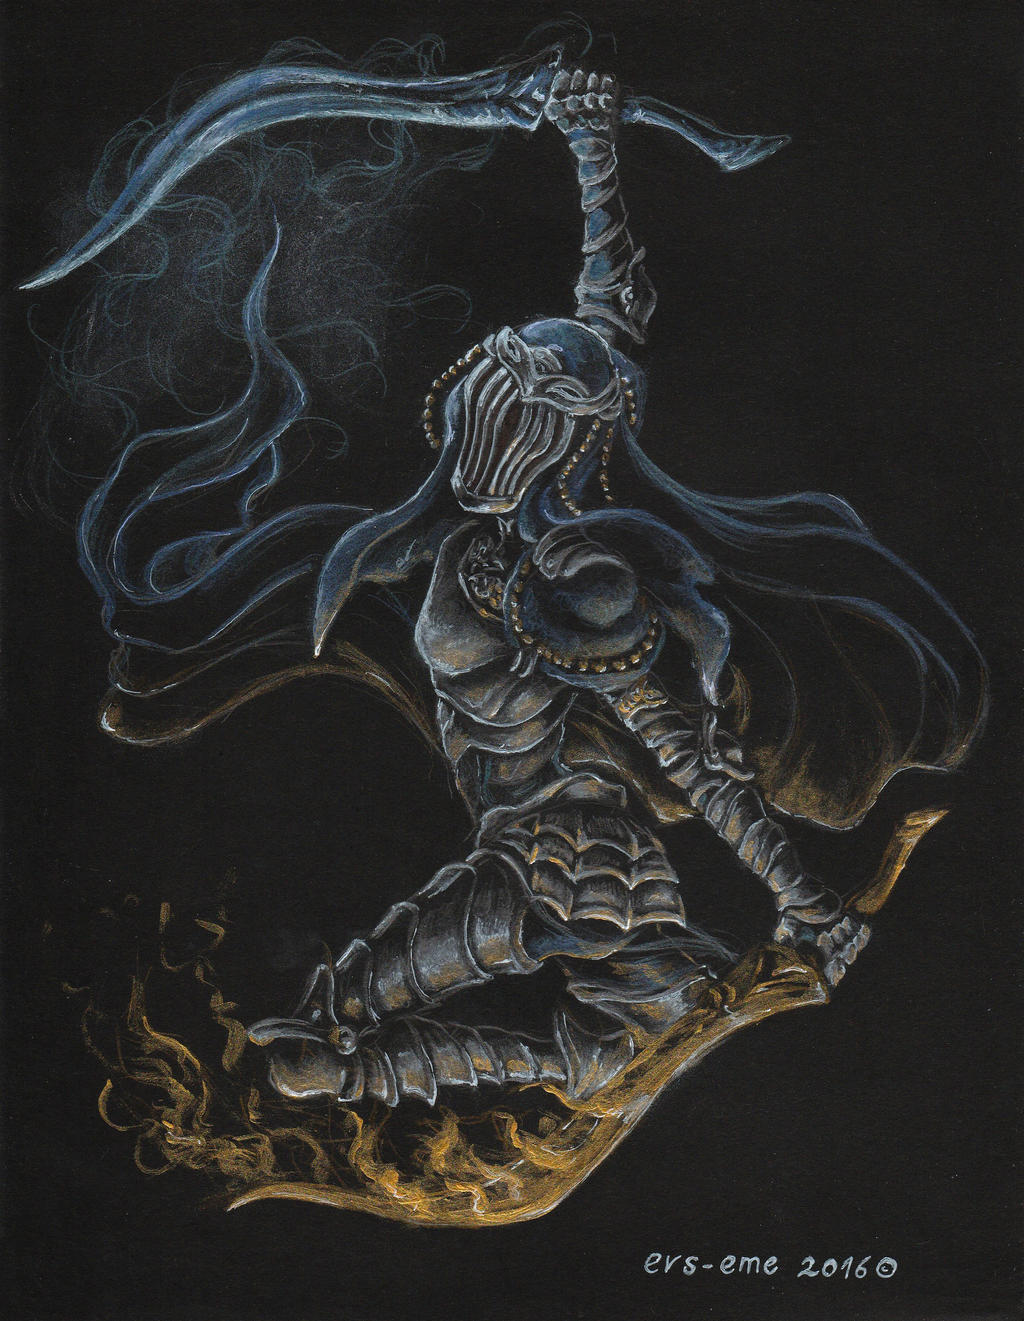 Dancer of the Boreal Valley - Dark Souls 3 by evs-eme